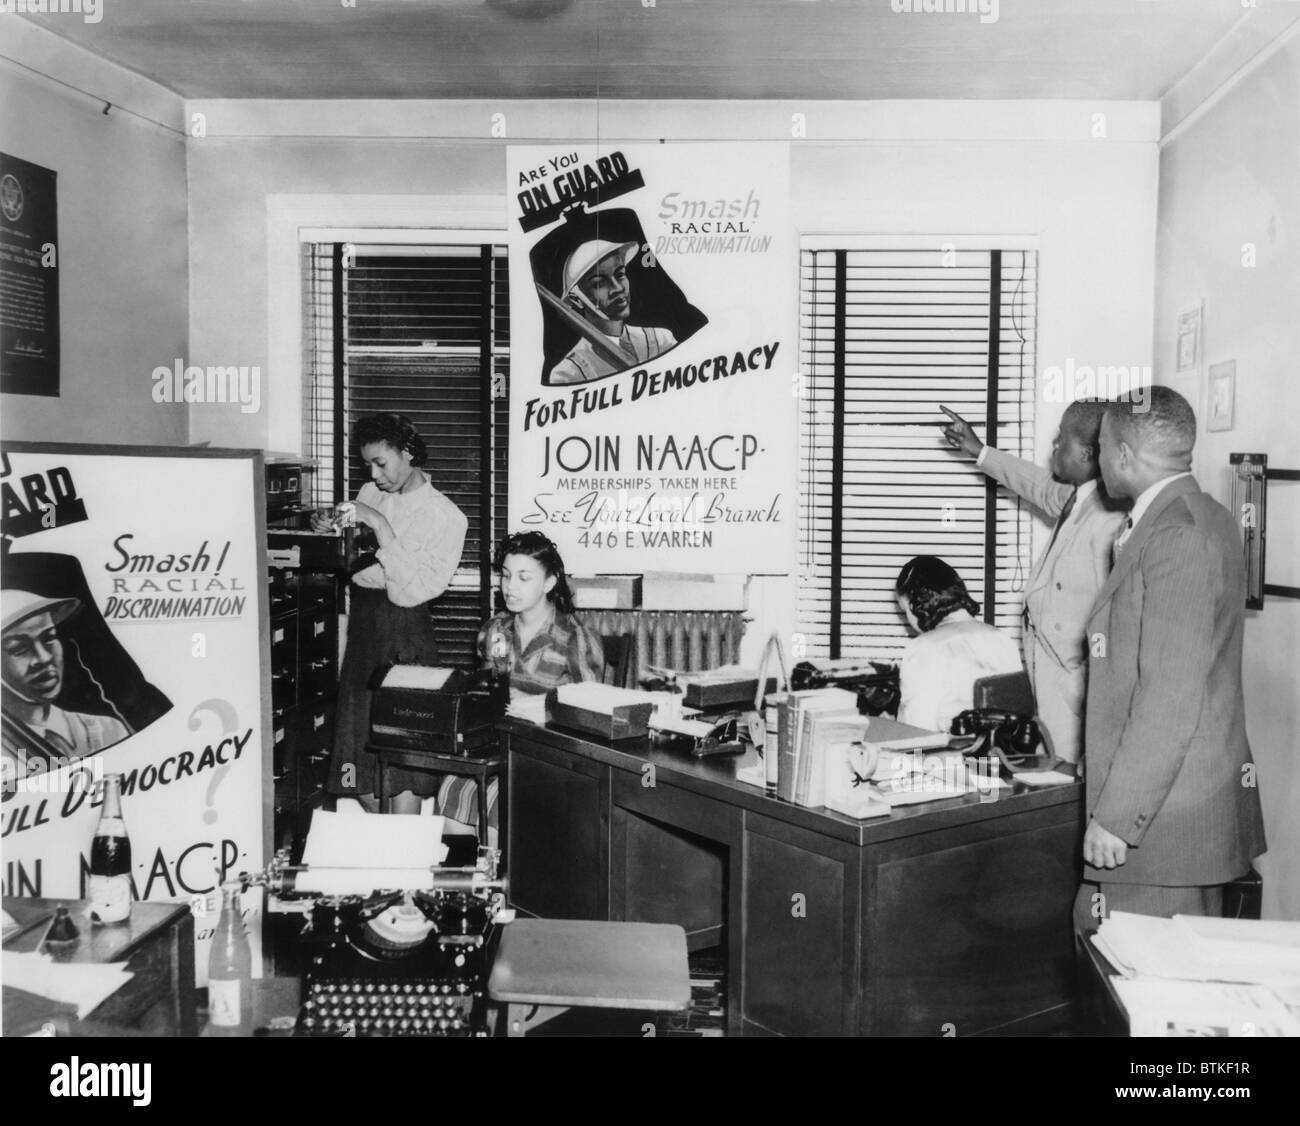 Interior view of NAACP branch office in Detroit, Michigan, showing NAACP membership drive posters picture an African - Stock Image